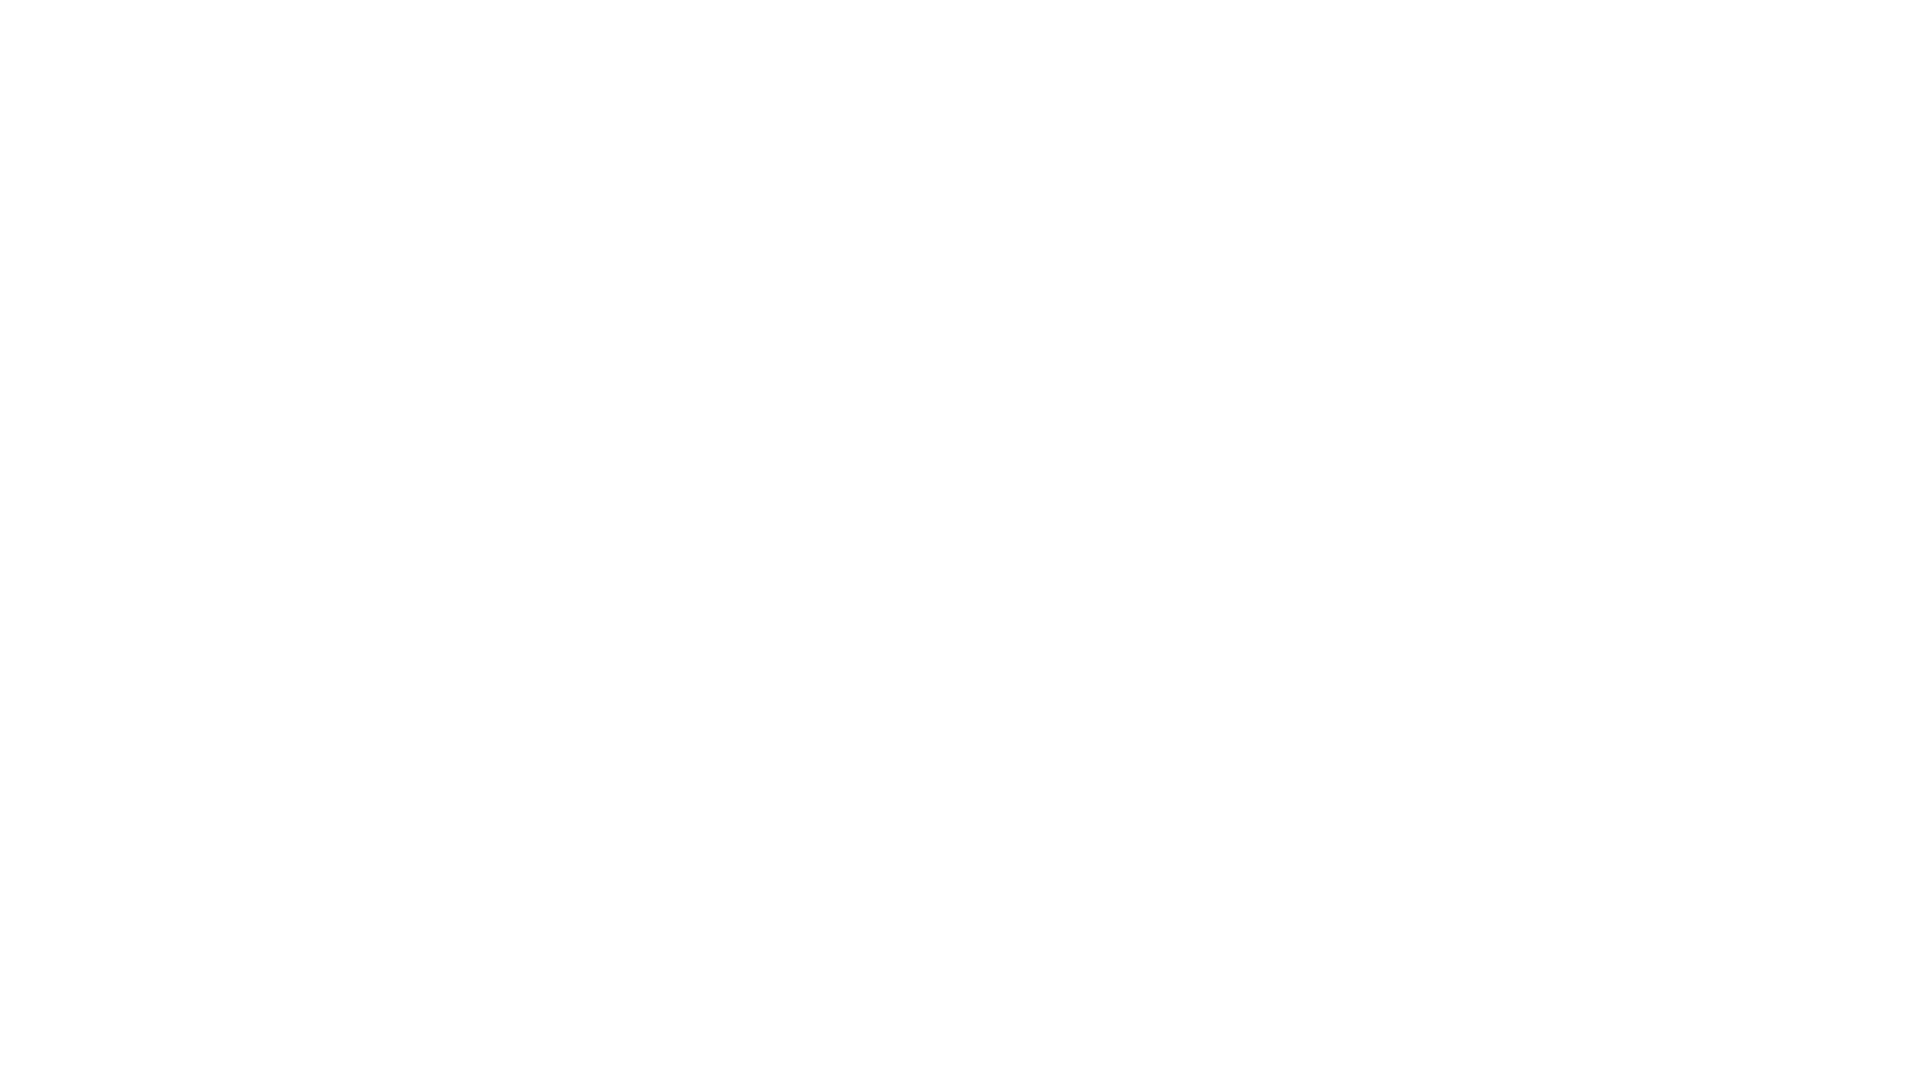 Eros Convention Centre